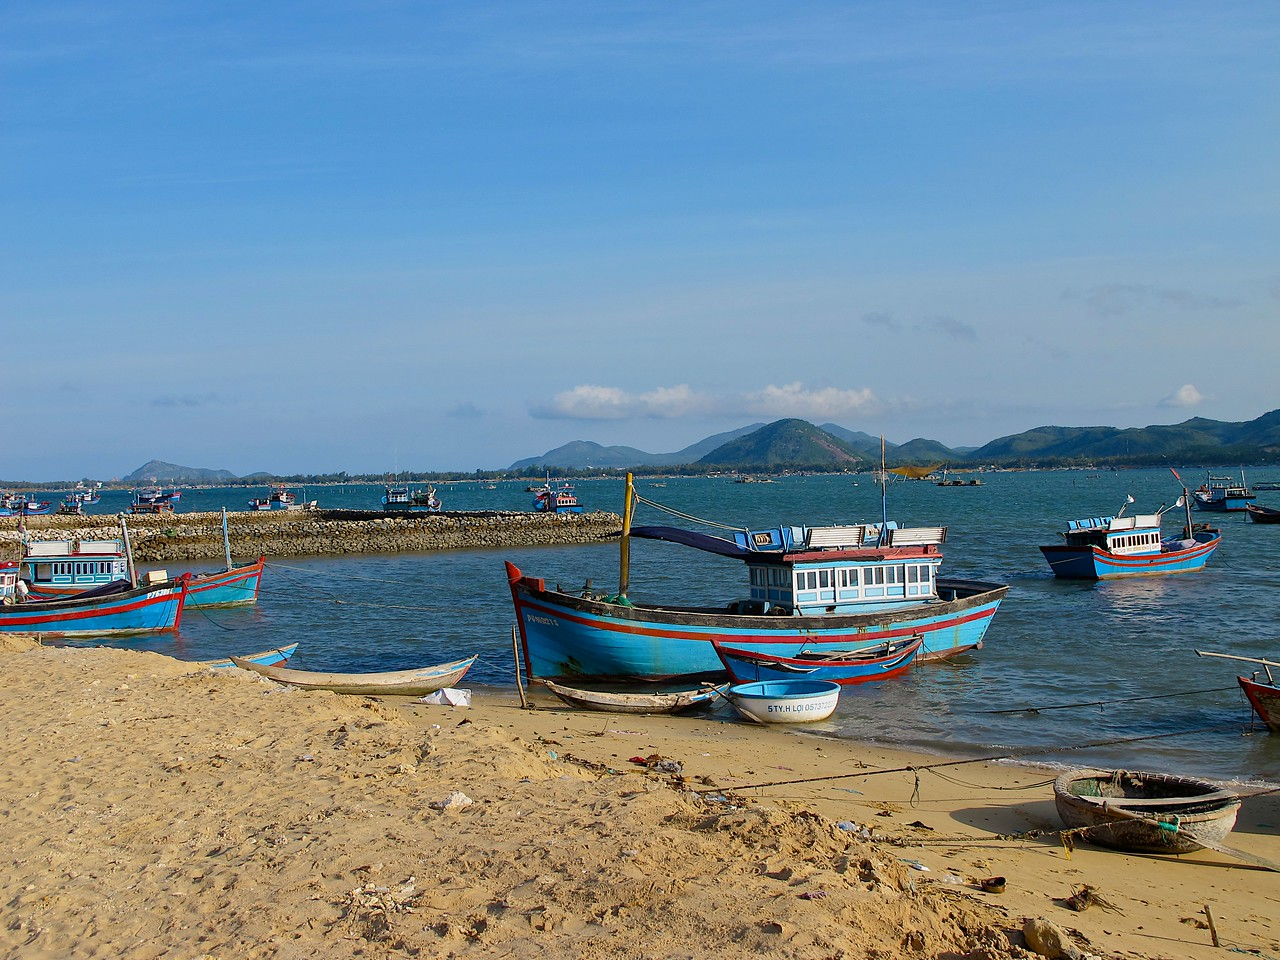 Most of the fisherman you see in the bay each morning come from these nearby villages.